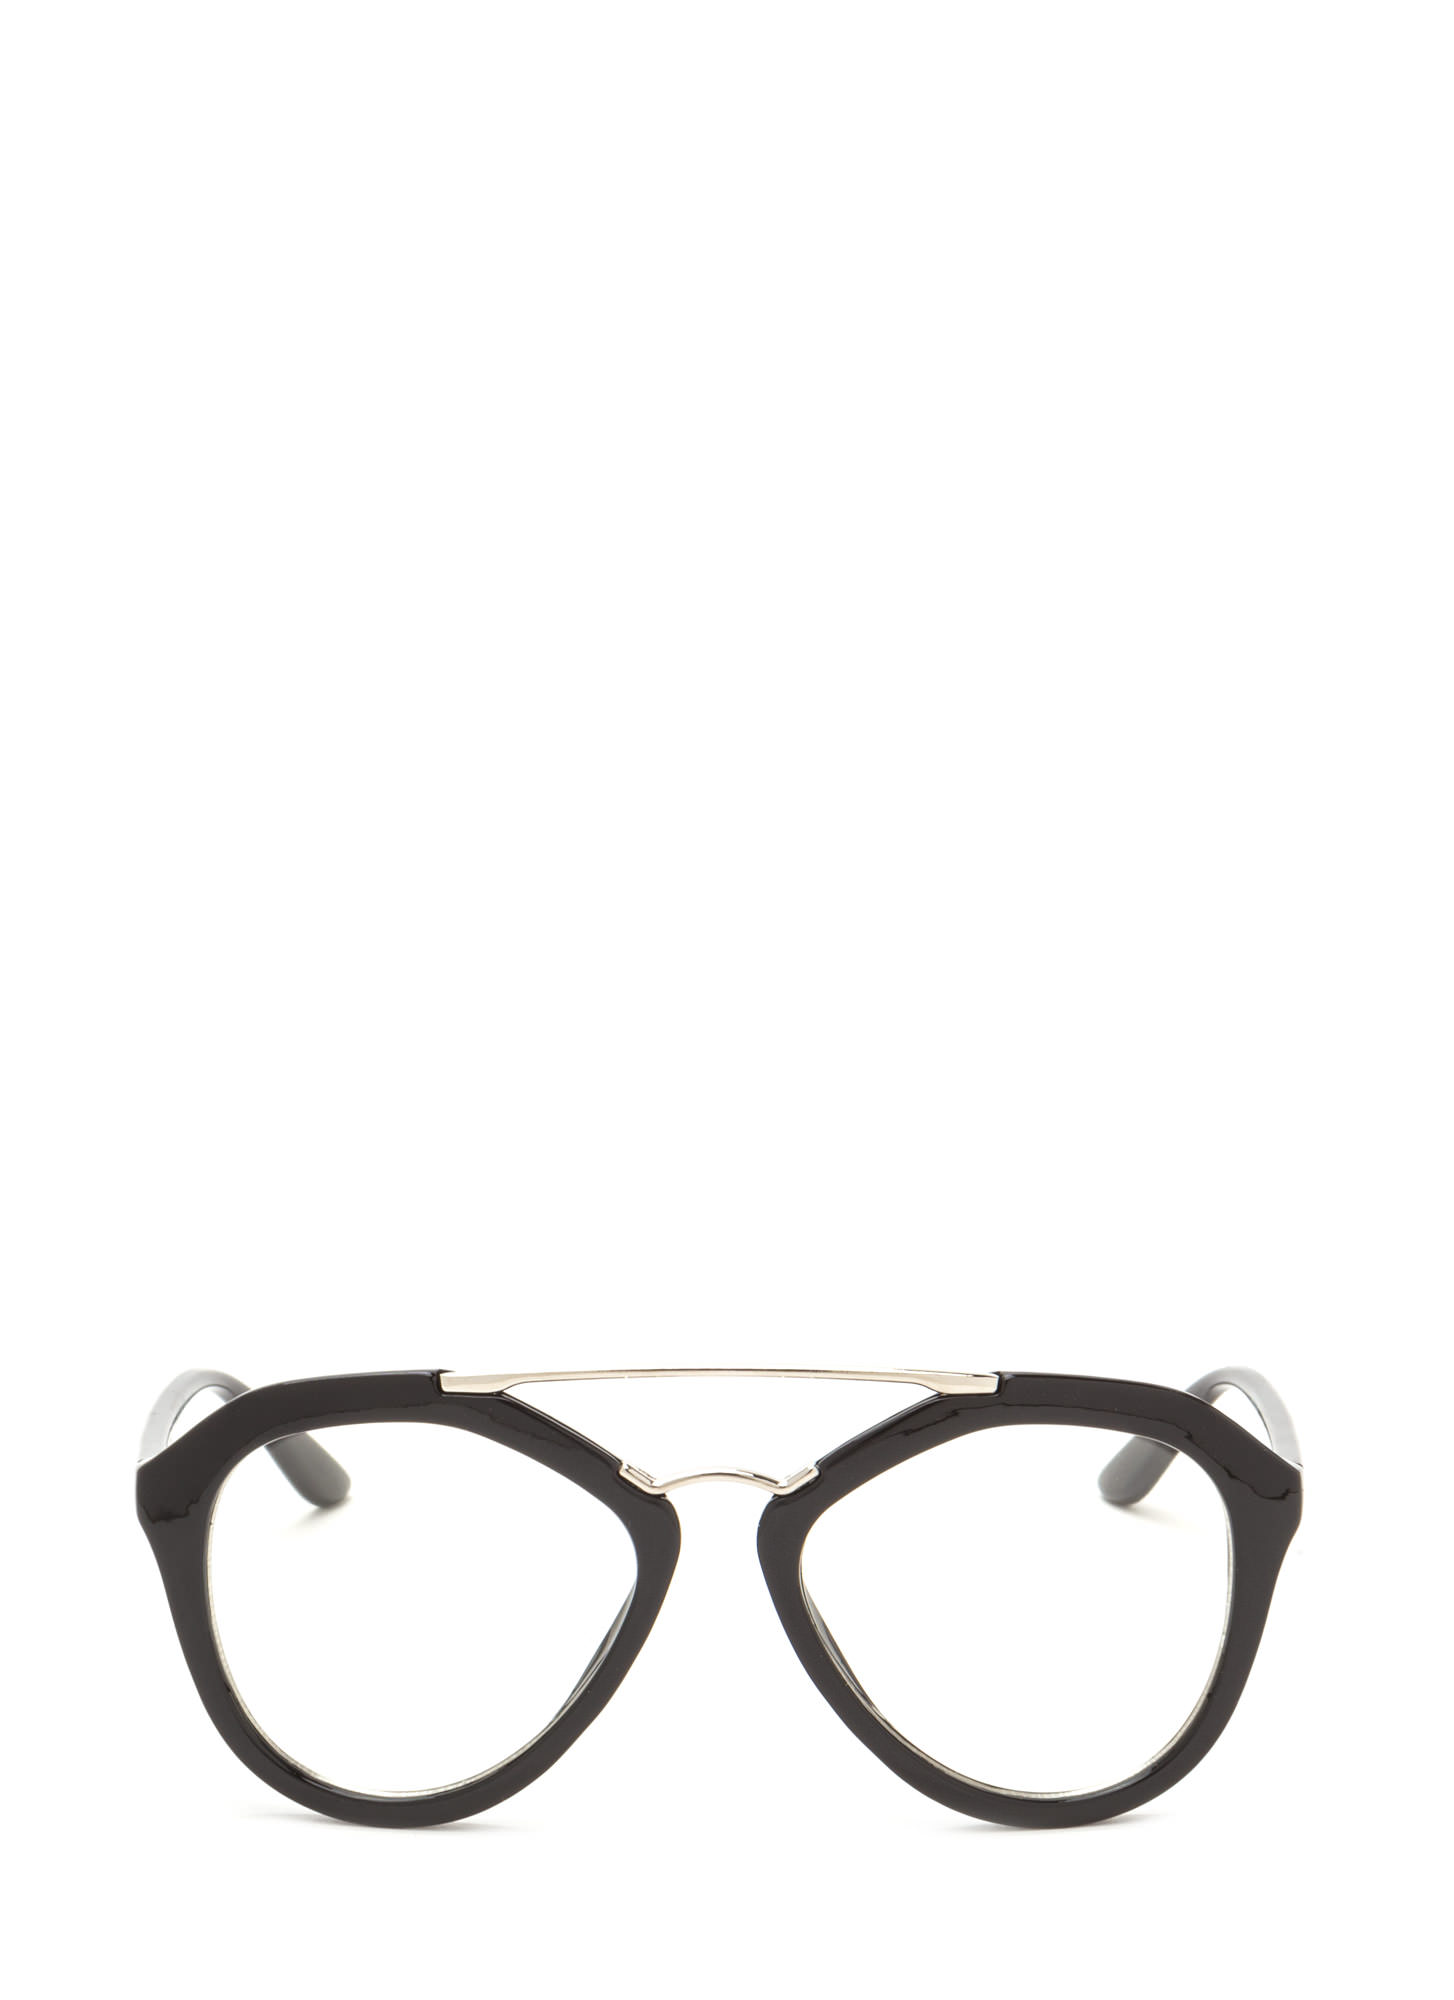 Geek Chic Brow Bar Glasses SILVERBLACK